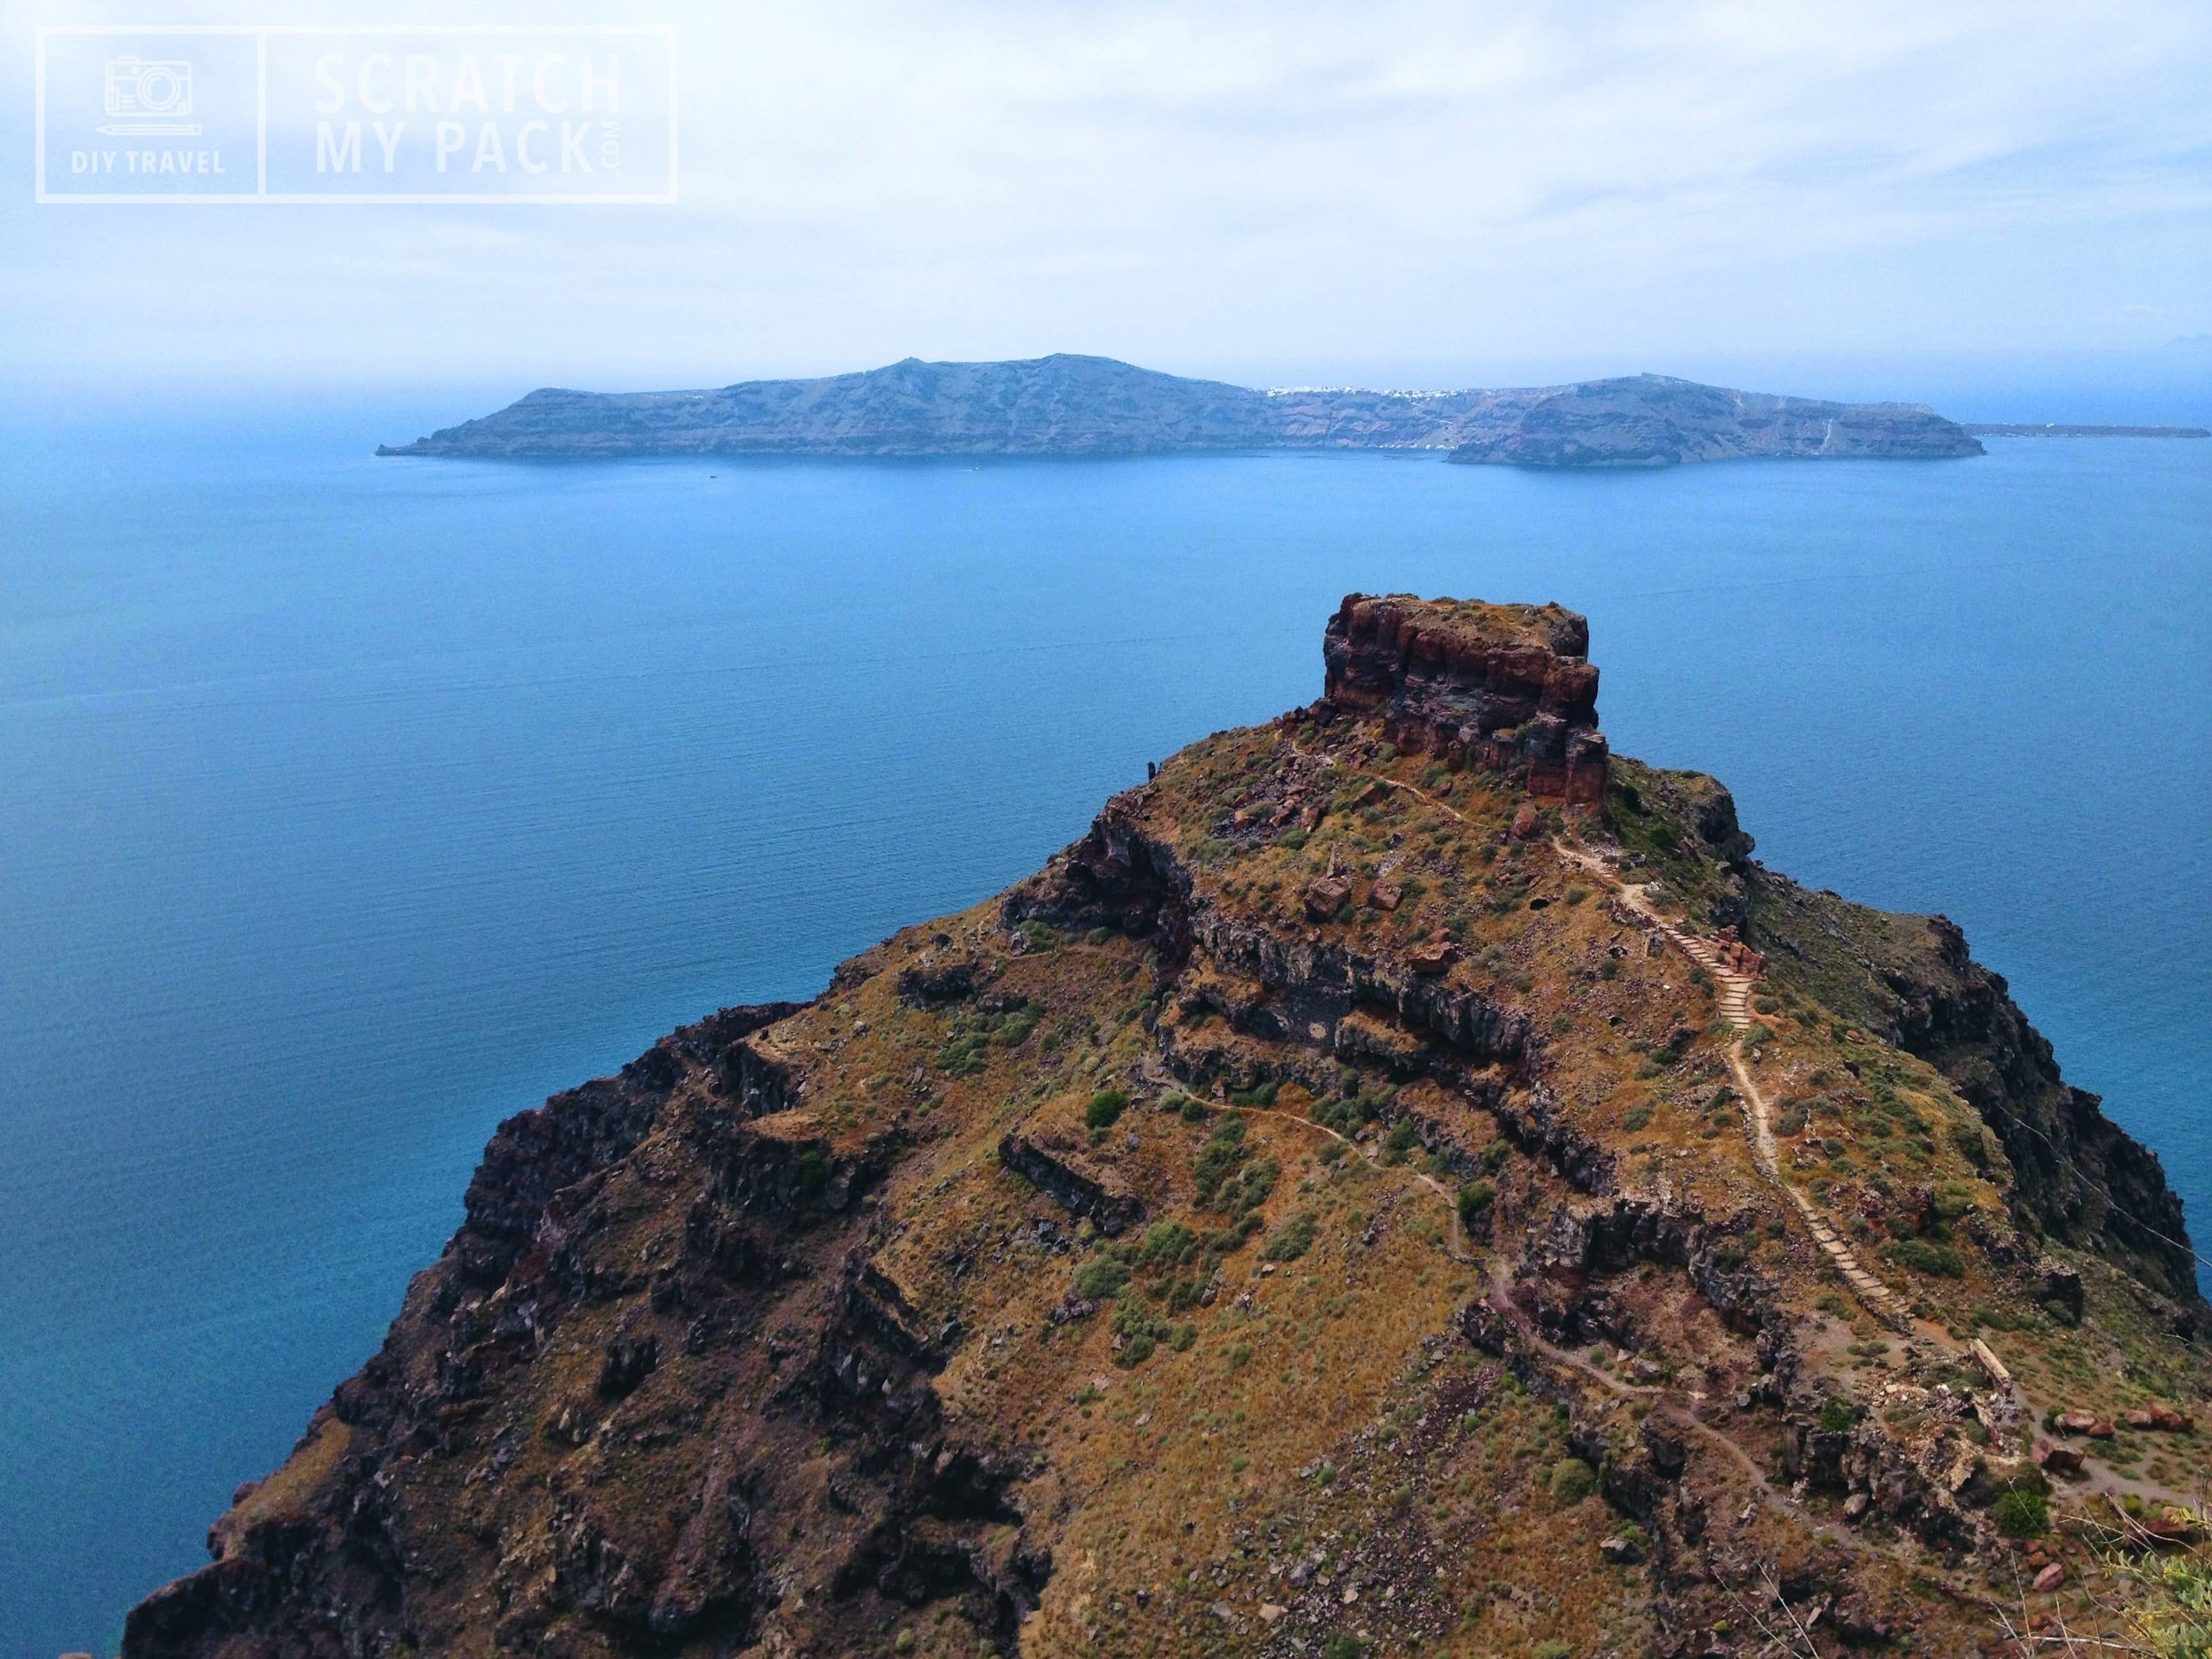 Walk to Skaros Rock  - Skaros is one of the most impressive spots in Santorini. Climb to the top of the rock for great views. It is also historically important, as it was the first fortress that was built on Santorini in the 15th century in order to protect from pirate attacks.